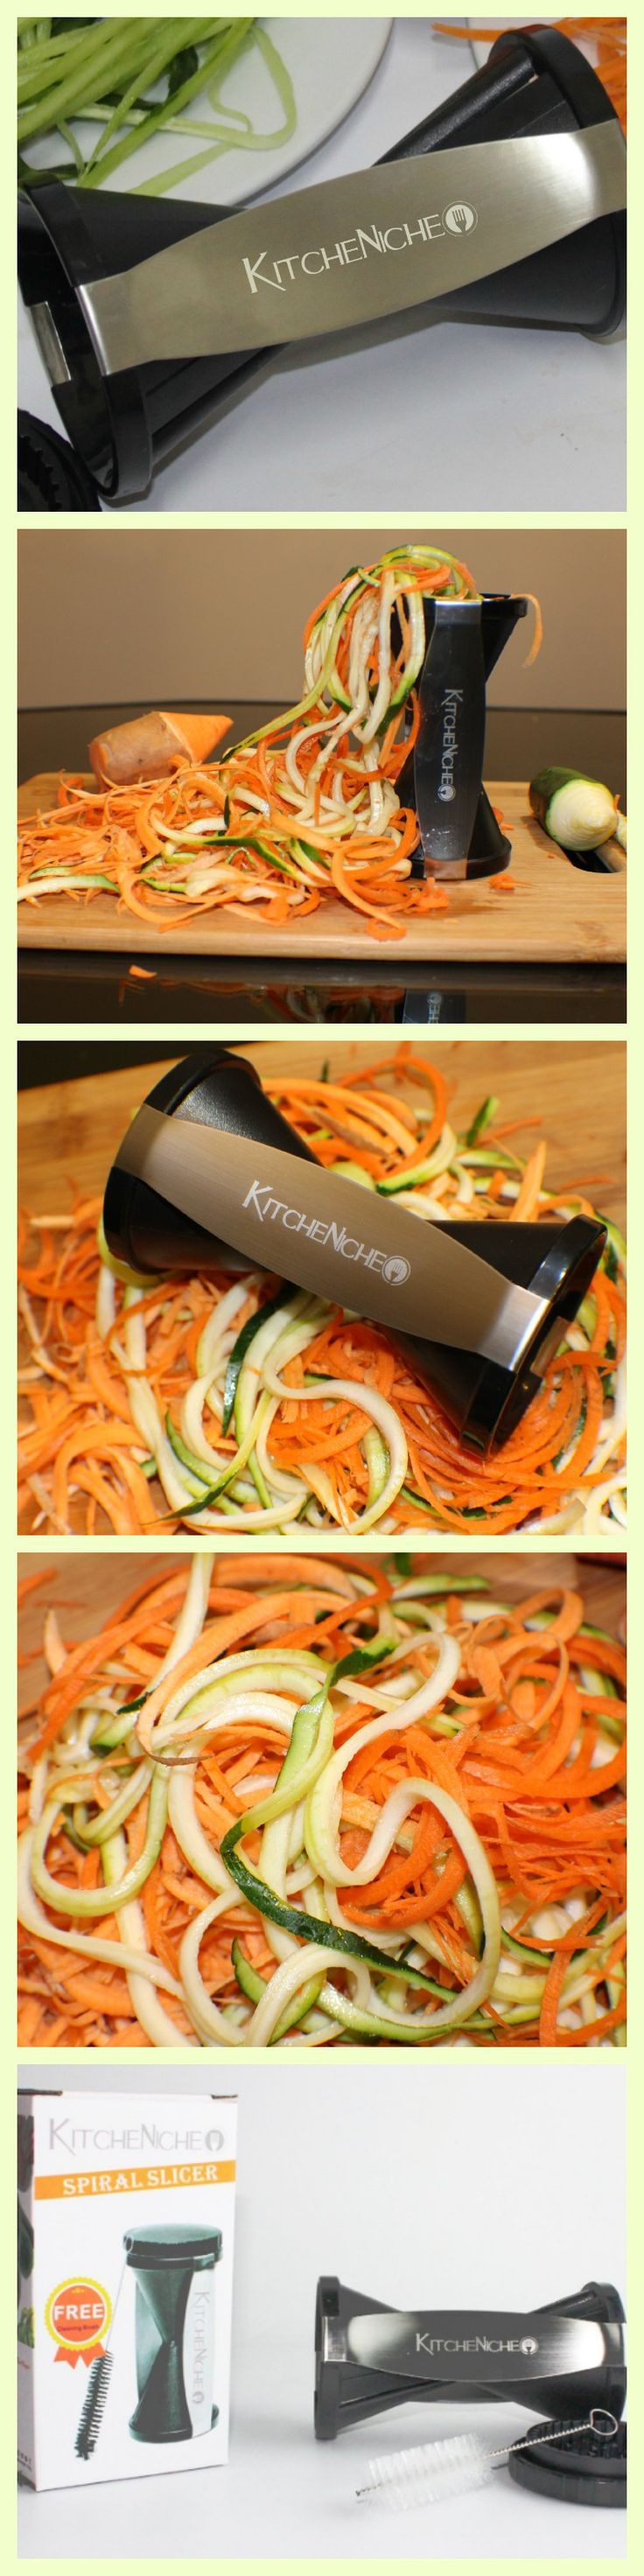 Make healthy Veggie Spaghetti with a Spiralizer by KitcheNiche !  the fastest way to create endless strands of veggie pasta in seconds. http://www.amazon.com/gp/product/B00PTNKPXK